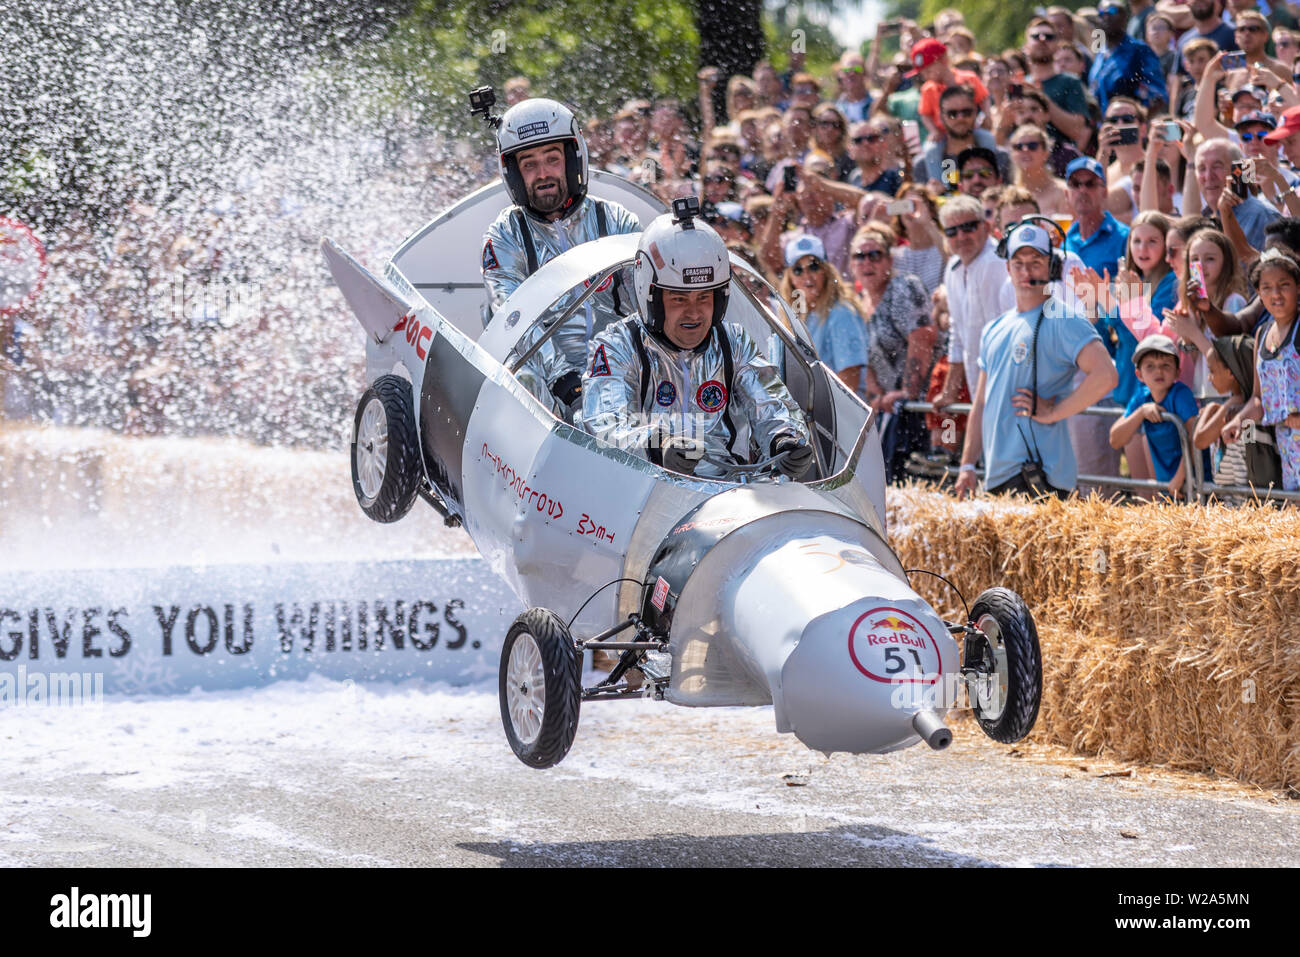 red-bull-soapbox-race-at-ally-pally-in-london-taking-place-in-the-alexandra-park-grounds-below-alexandra-palace-around-60-teams-entered-using-the-contours-to-allow-gravity-to-send-the-un-powered-hand-made-soapbox-carts-down-the-course-which-includes-ramps-of-various-designs-which-sometimes-damage-the-carts-as-they-land-W2A5MN.jpg